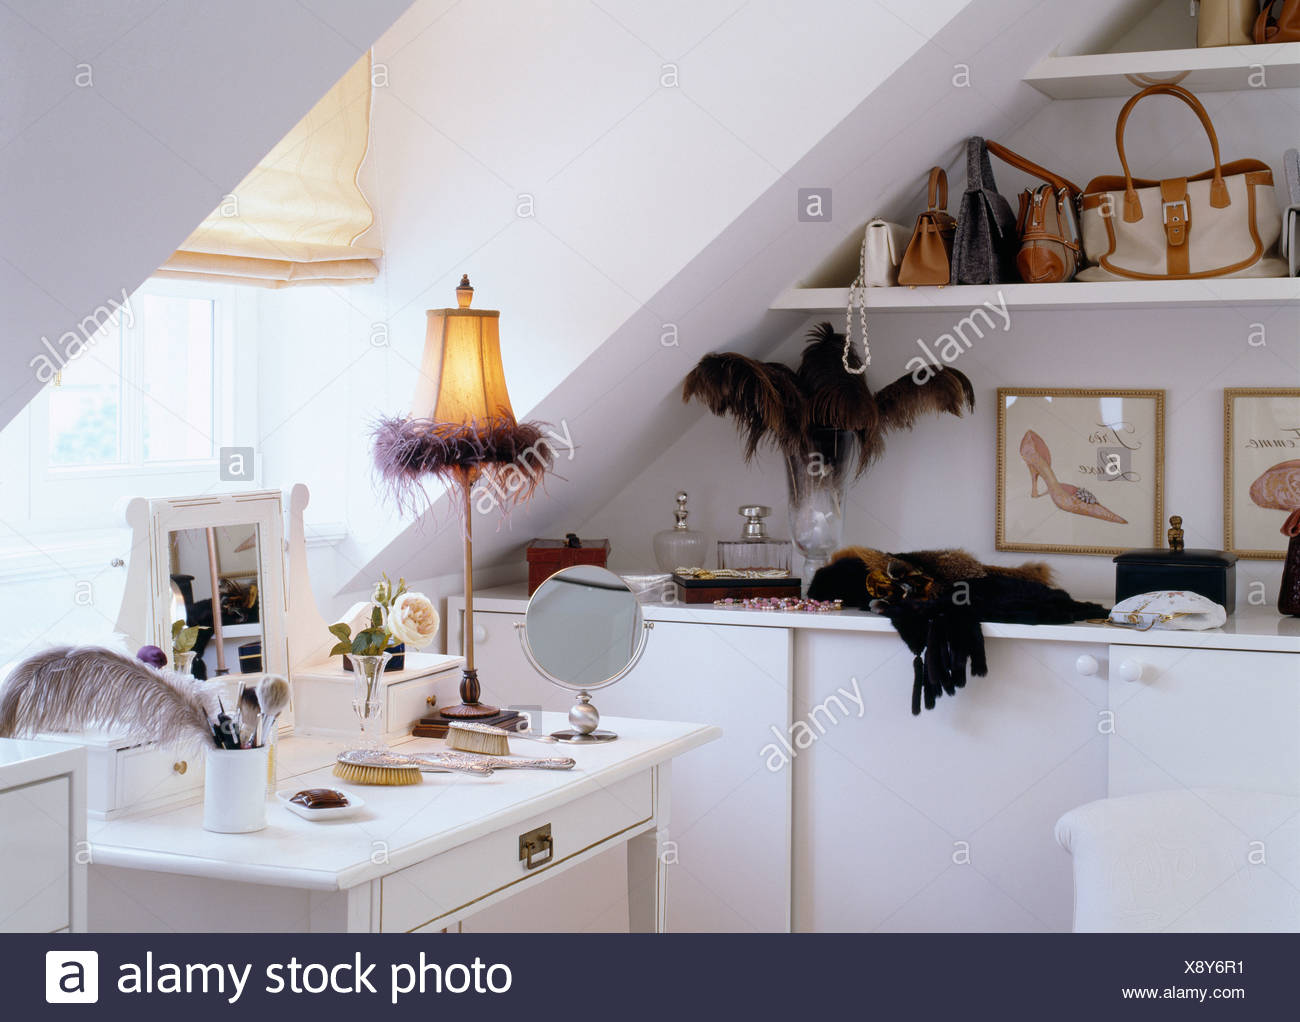 Feather Trimmed Lamp On Dressing Table Below Window In White Attic Bedroom